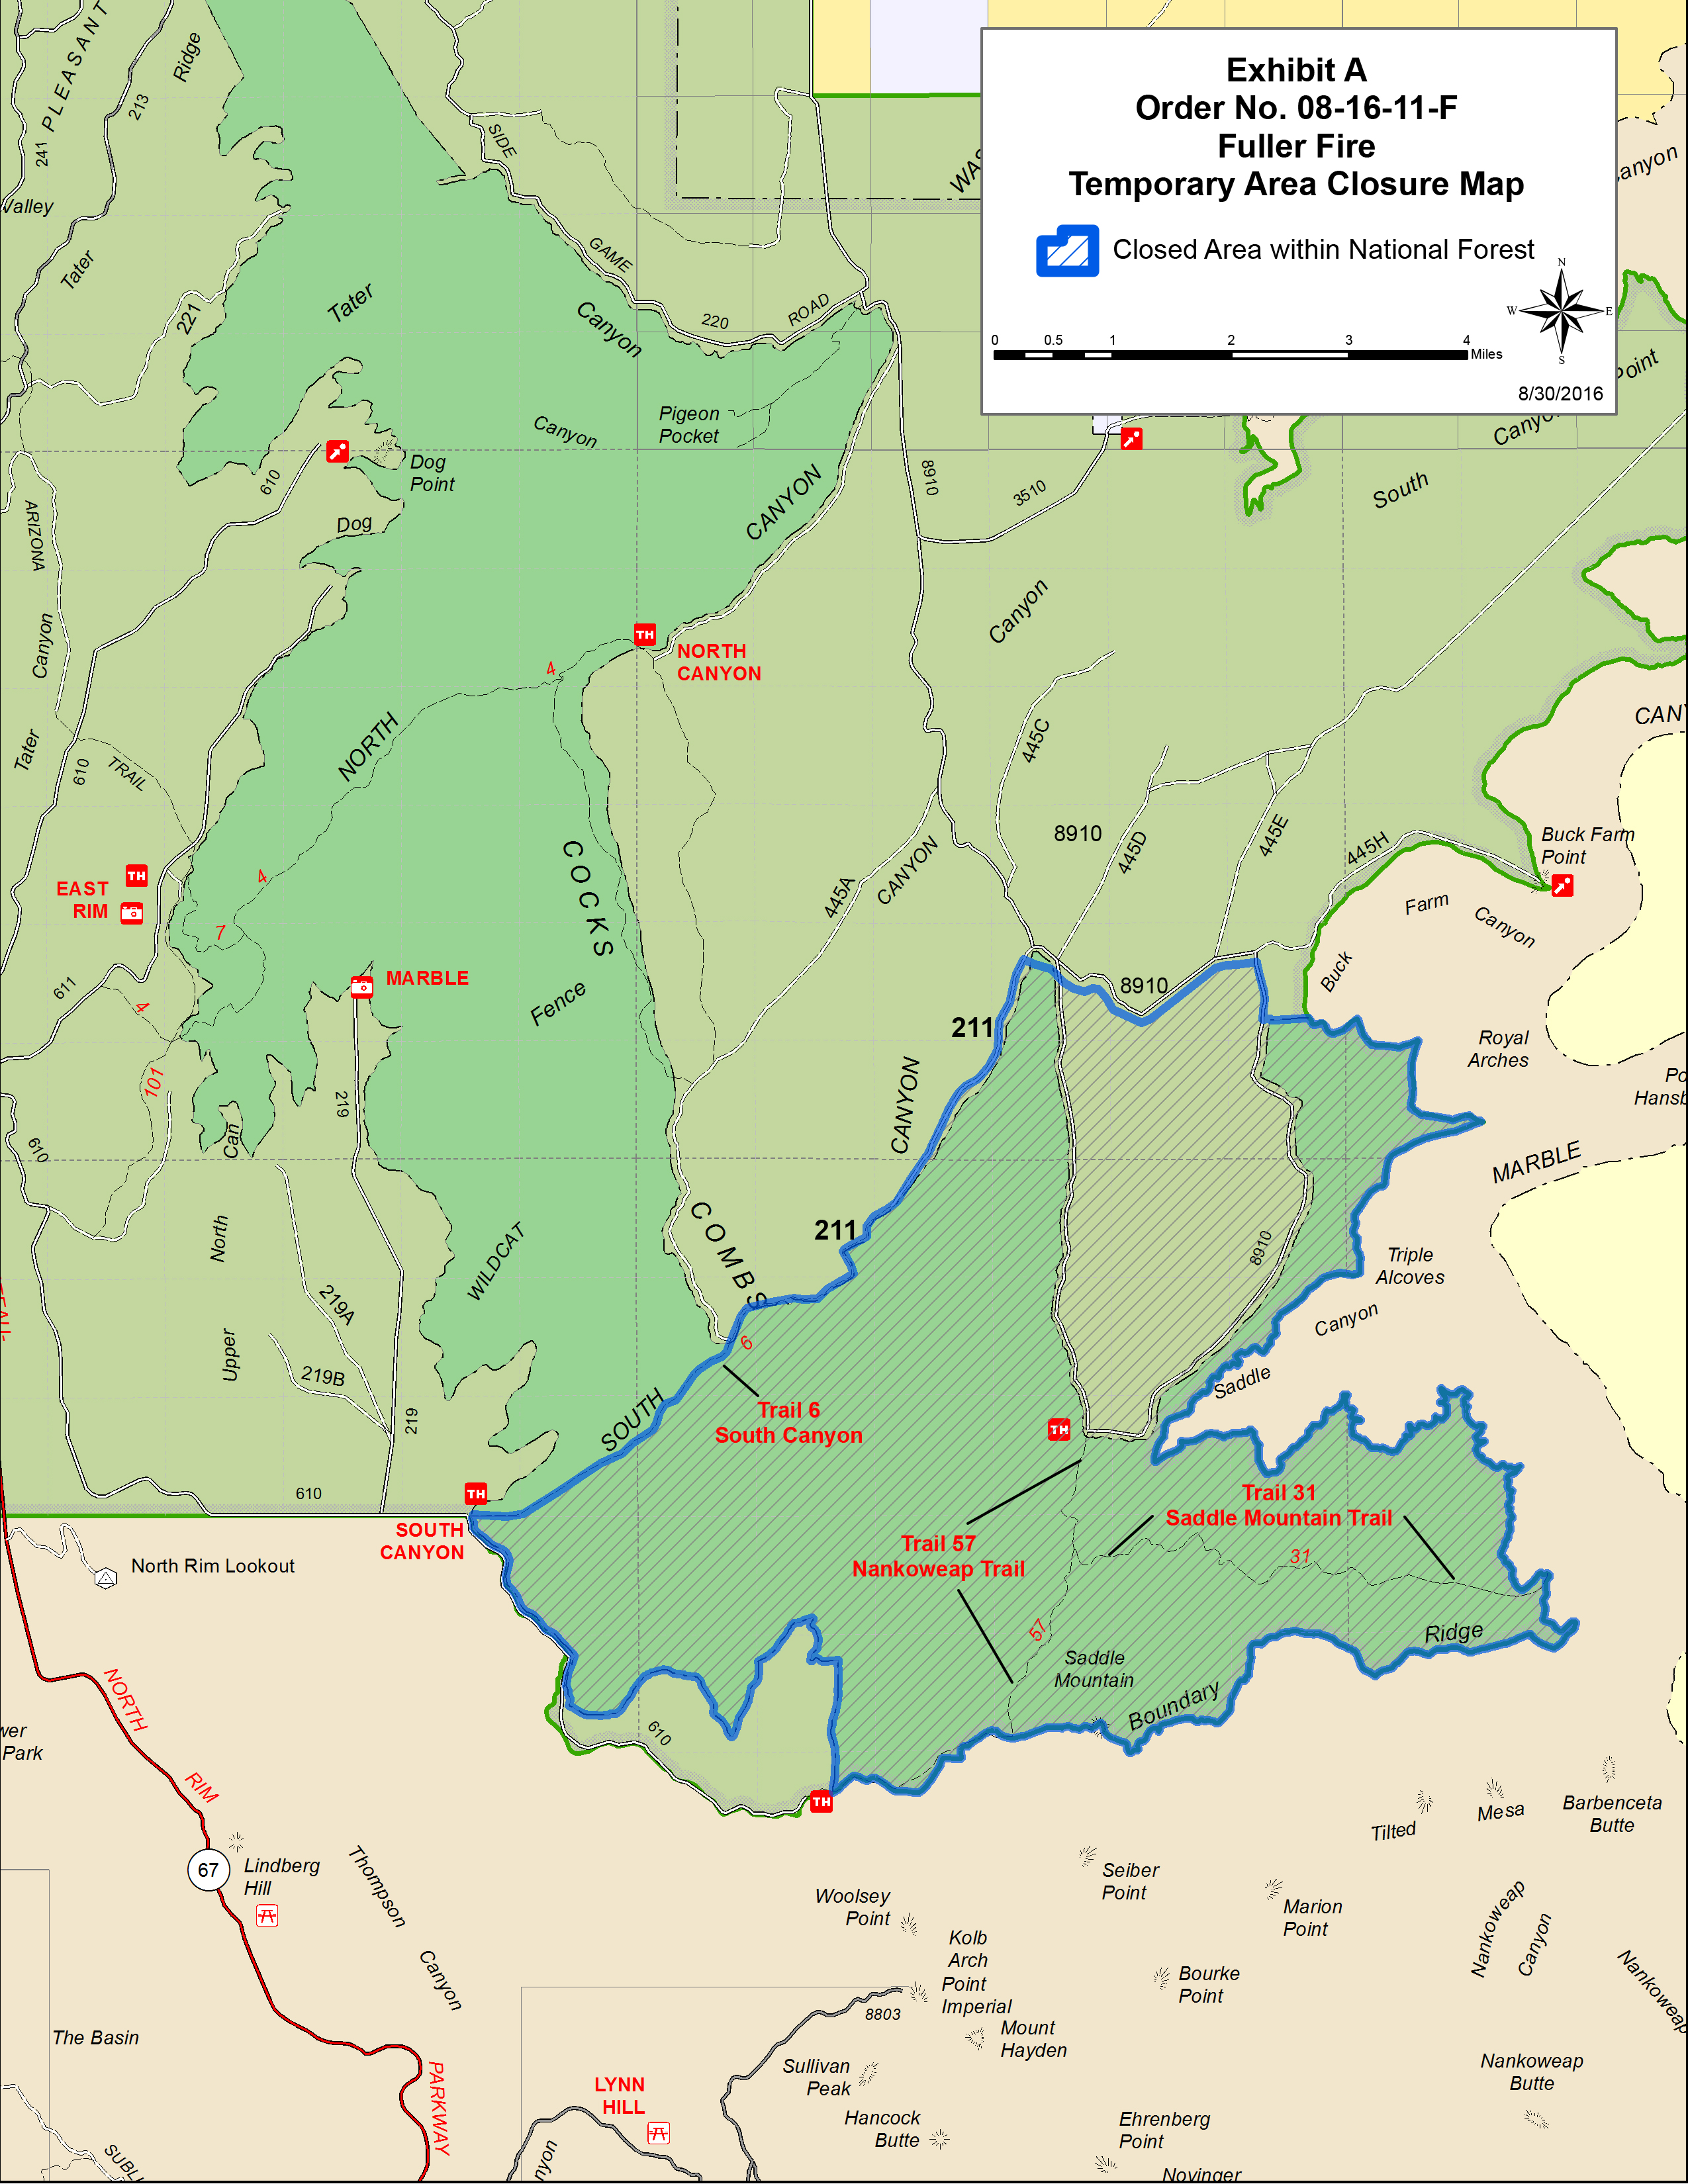 A closure order for the Fuller Fire, located on the North Rim of Grand Canyon National Park, has been modified, Sept. 2, 2016, | Graphic courtesy Kaibab National Forest, North Kaibab Ranger District, St. George News